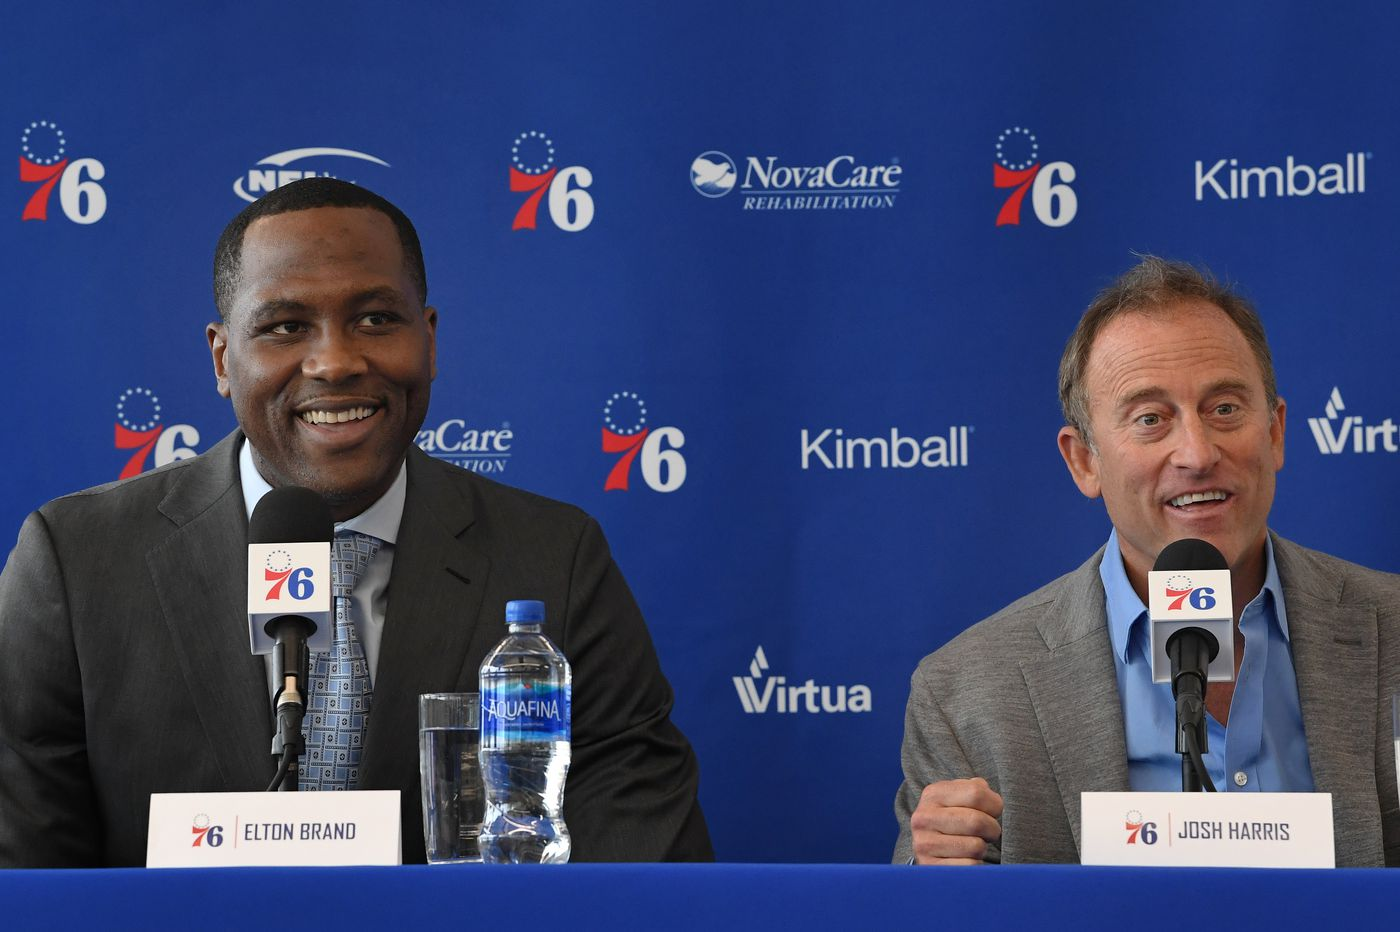 Sixers podcast: Negative test flow; reduction in salary blow for some 76ers employees